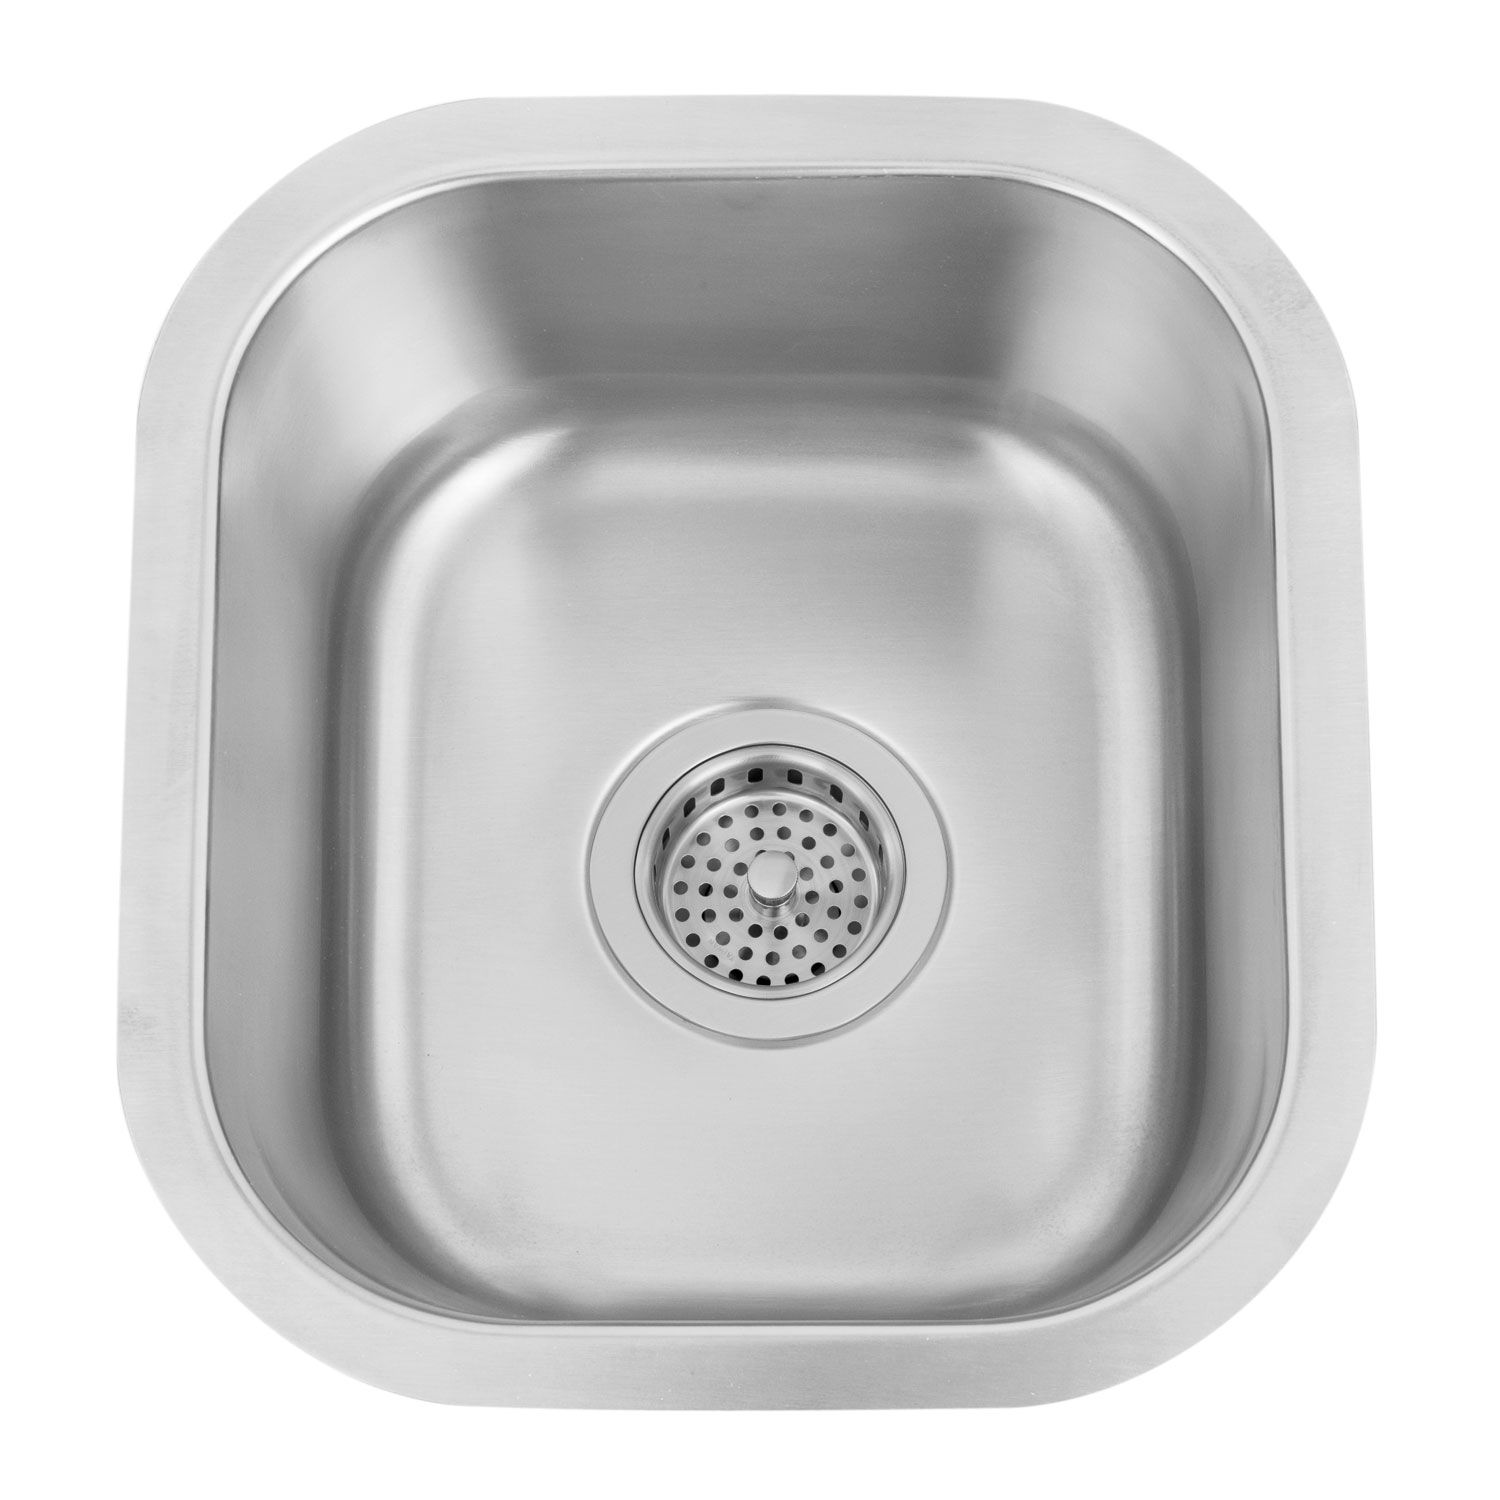 Infinite Small Square Stainless Steel Undermount Prep Sink   Bar And Prep  Sinks   Kitchen